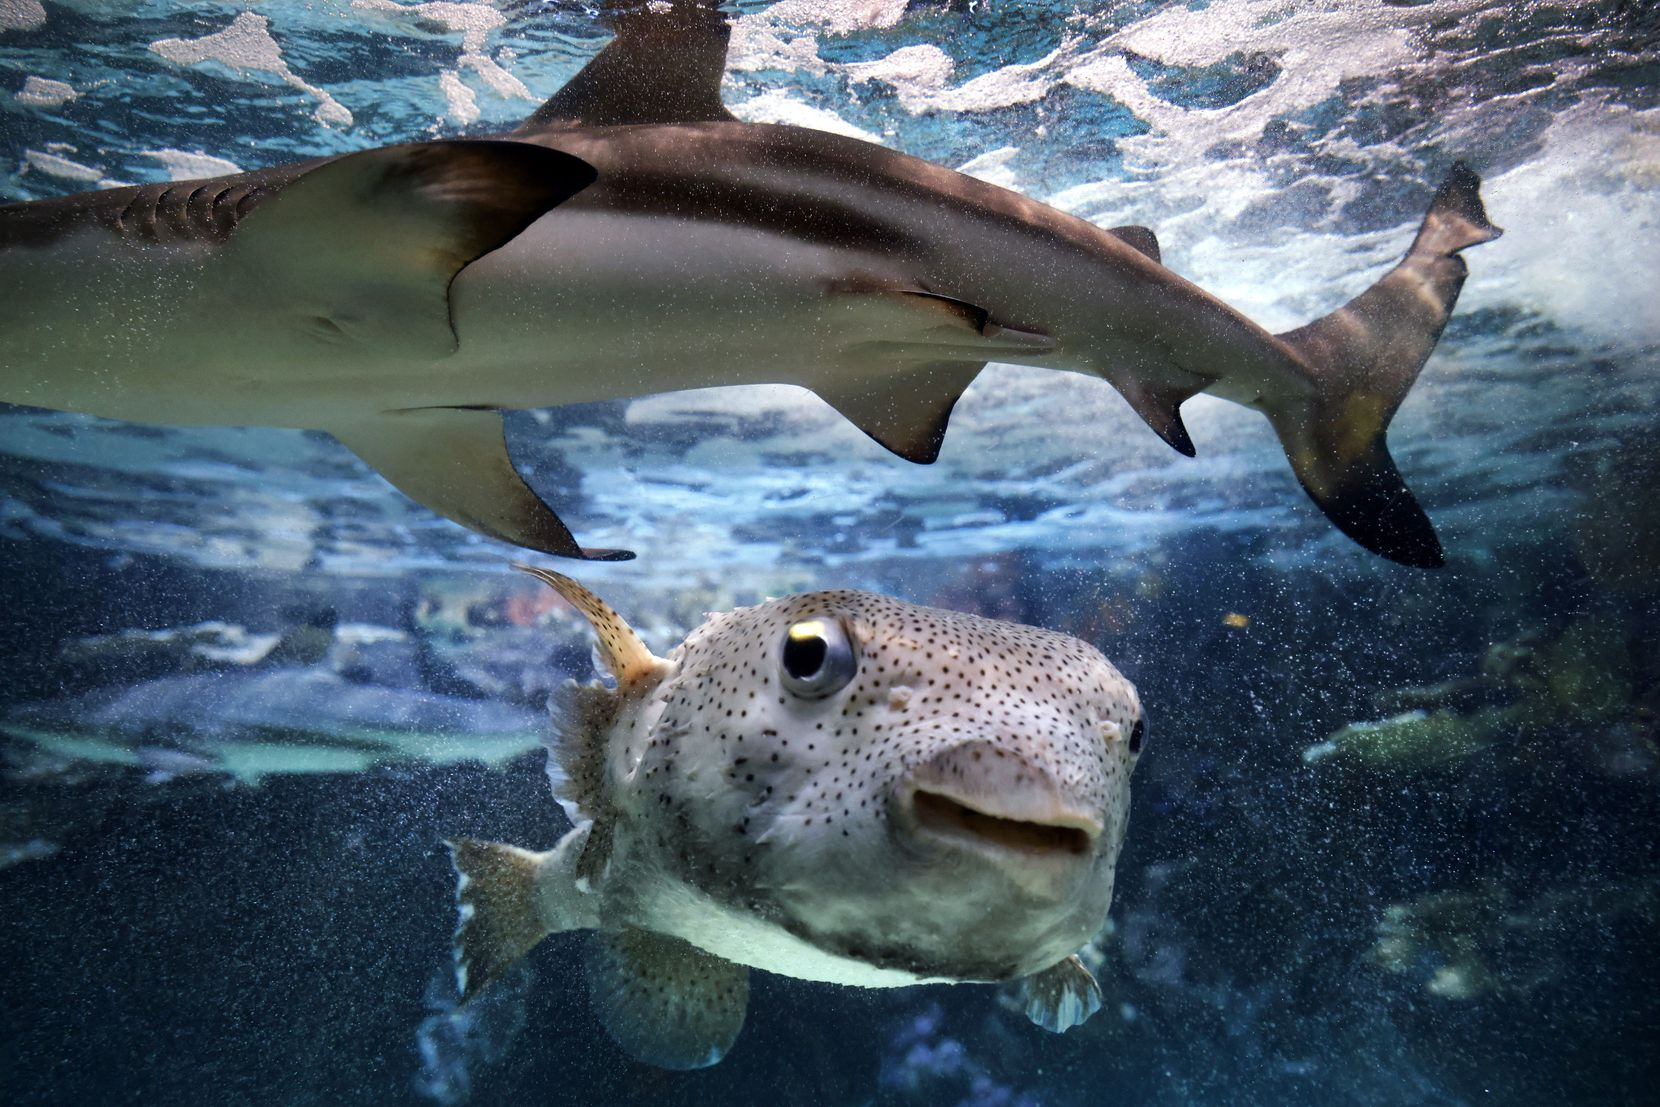 A Porcupine Pufferfish swims below a passing blacktip shark in one of the tanks at The Children's Aquarium at Fair Park in Dallas, Friday, September 17, 2021. The aquarium will reopen for the first time since the COVID-19 pandemic during the State Fair of Texas. (Tom Fox/The Dallas Morning News)